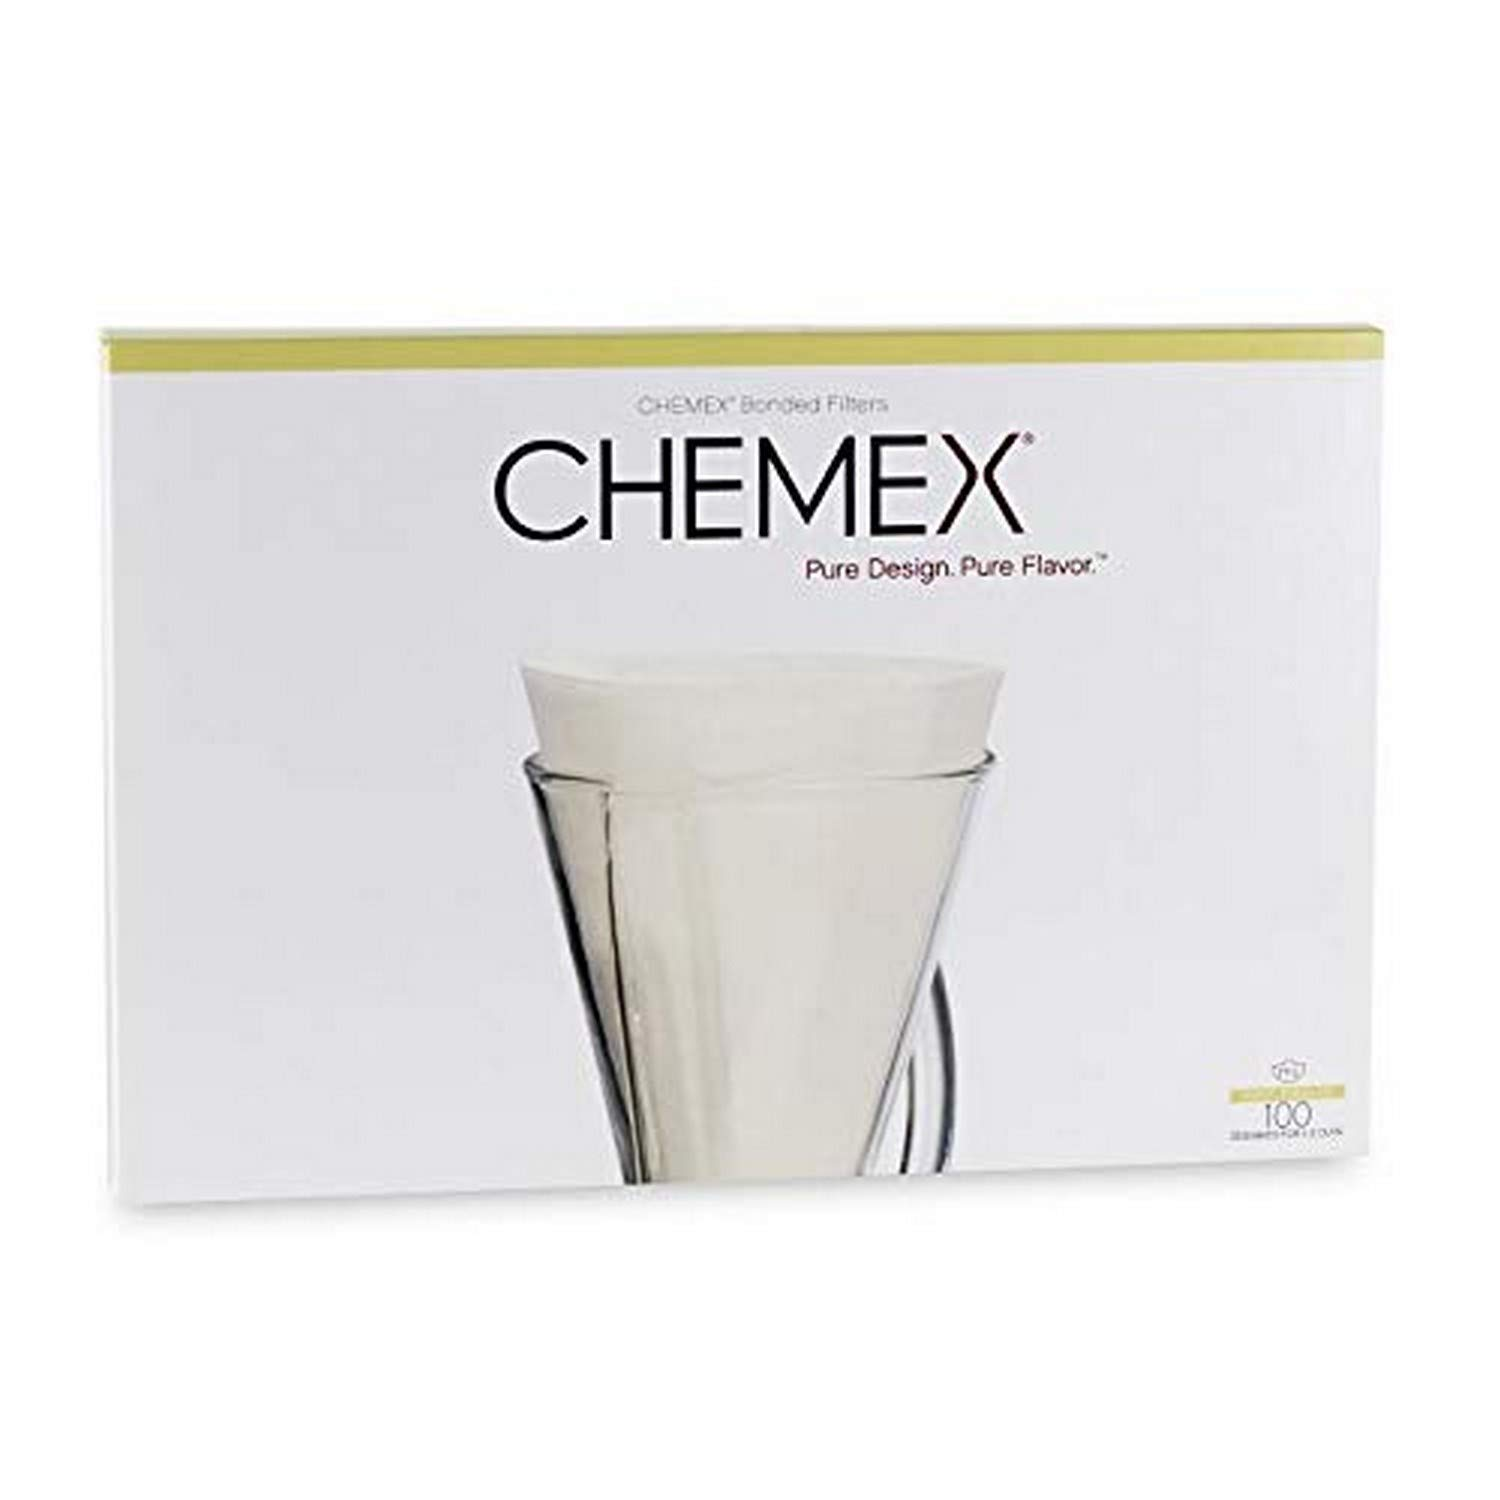 Chemex Bonded Filters, Unfolded, Half Moon, 100 Count 61kNDYU3T0L